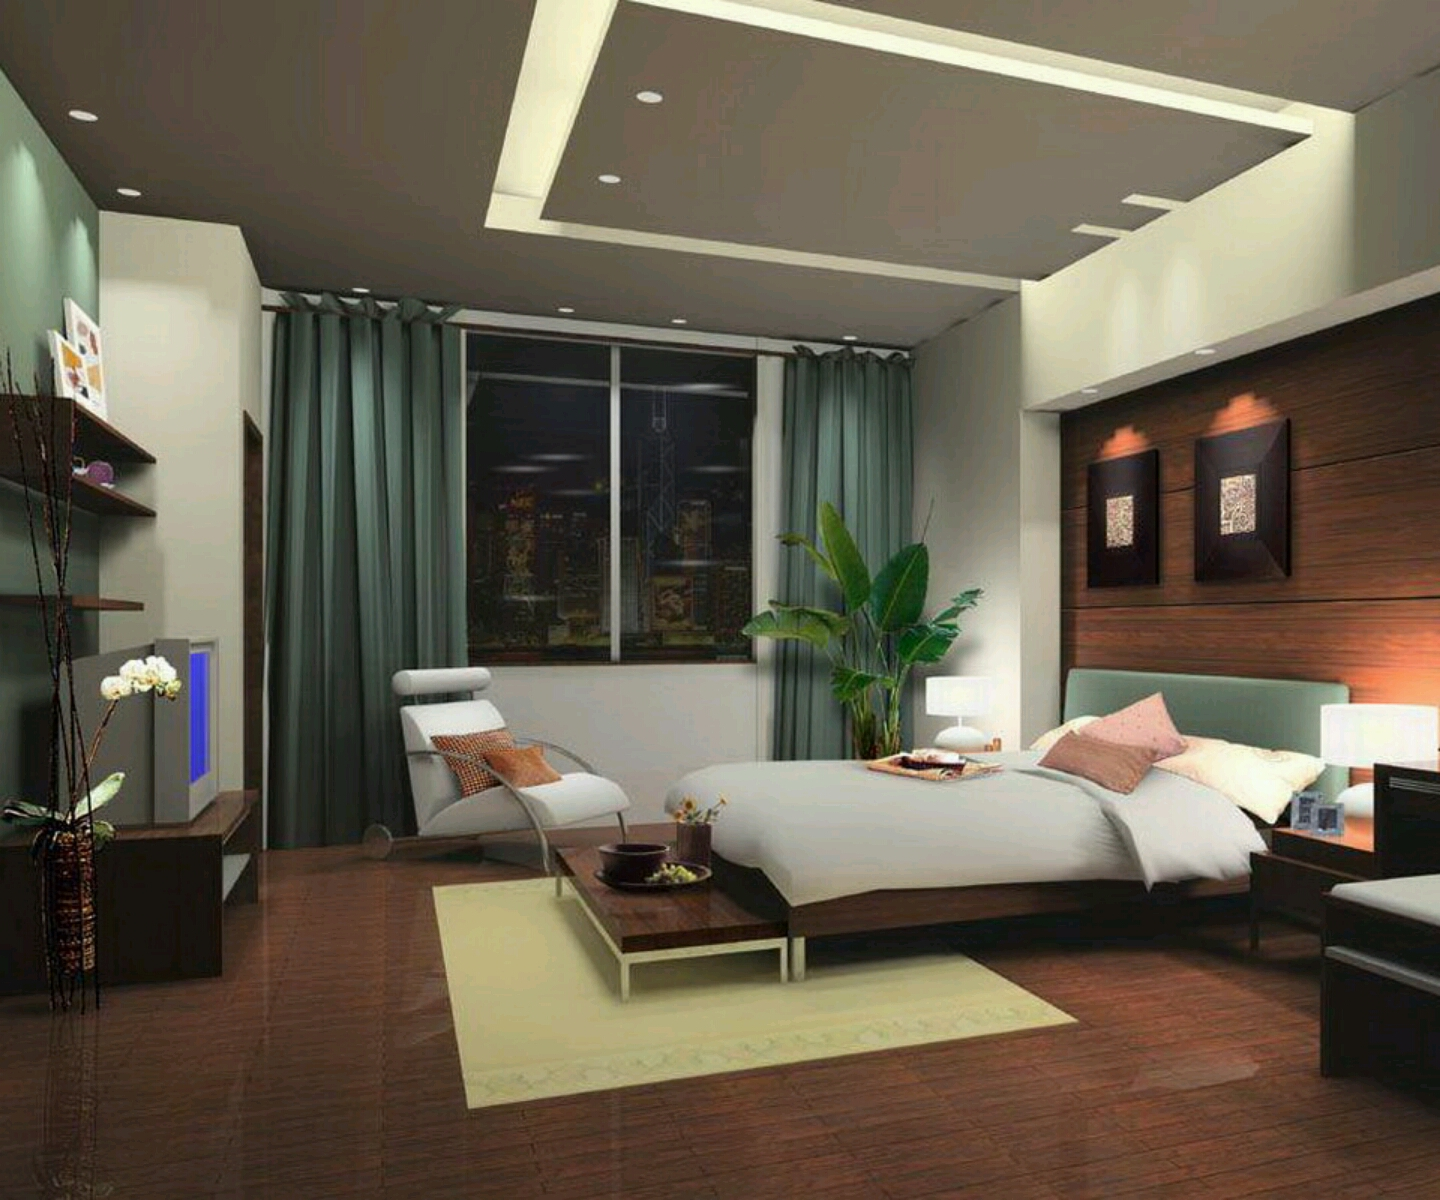 New home designs latest modern bedrooms designs best ideas for Latest bedroom decorating ideas